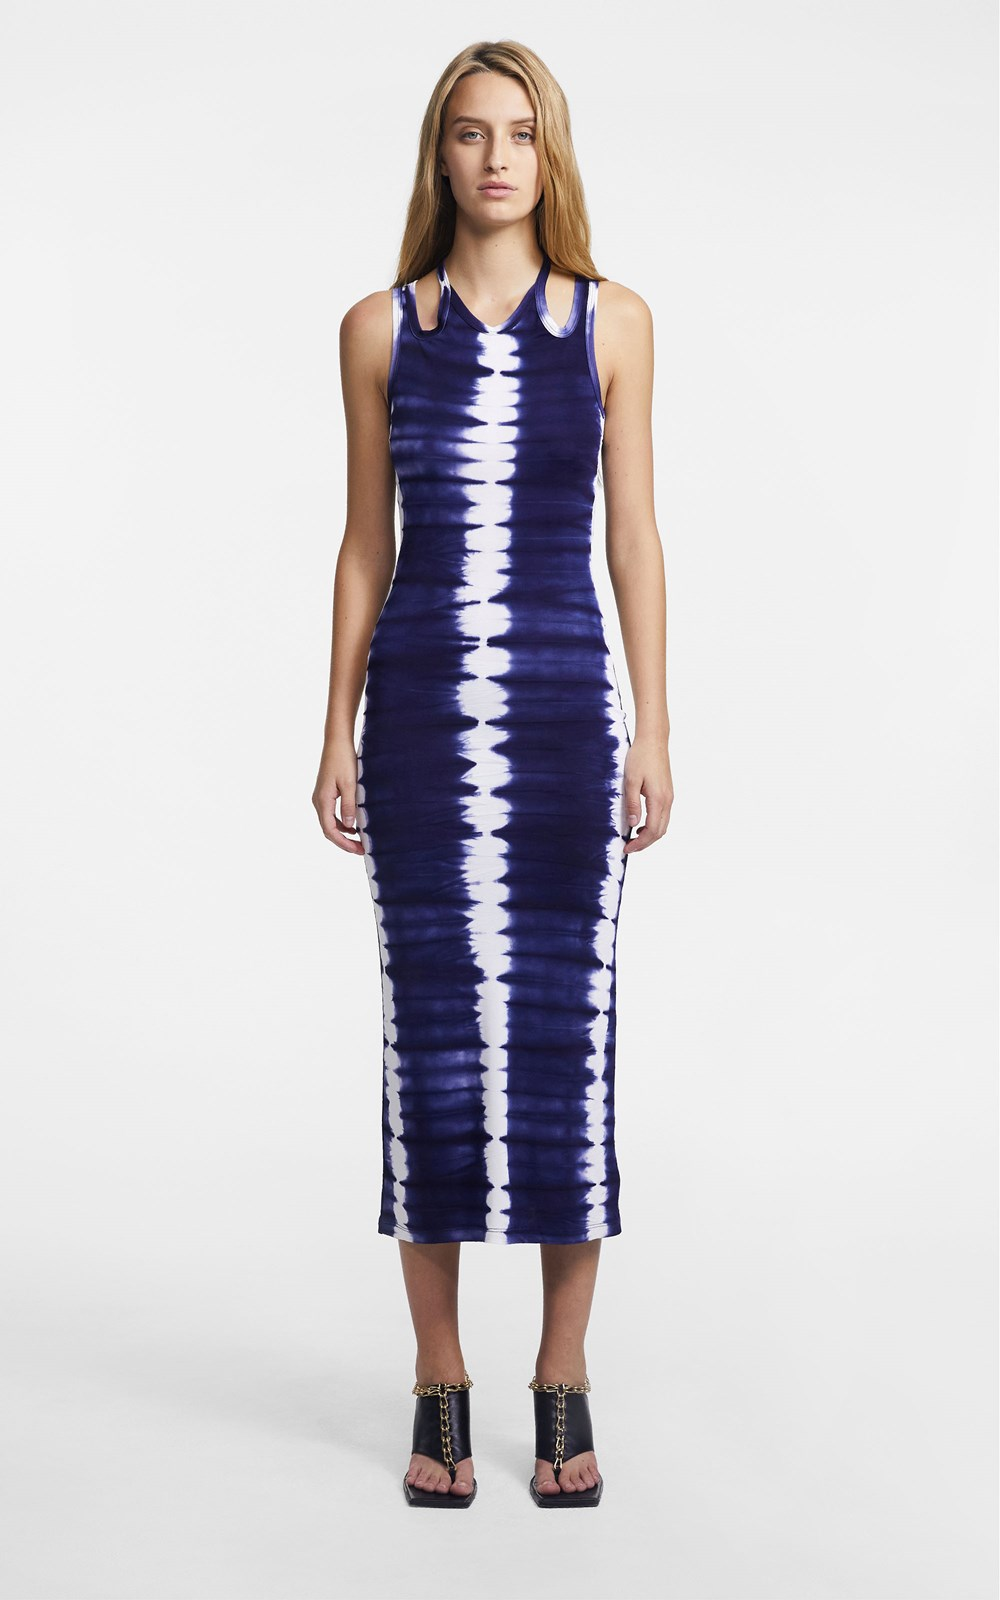 Dresses | HAND DYED SHIBORI HALTER TIE TANK DRESS